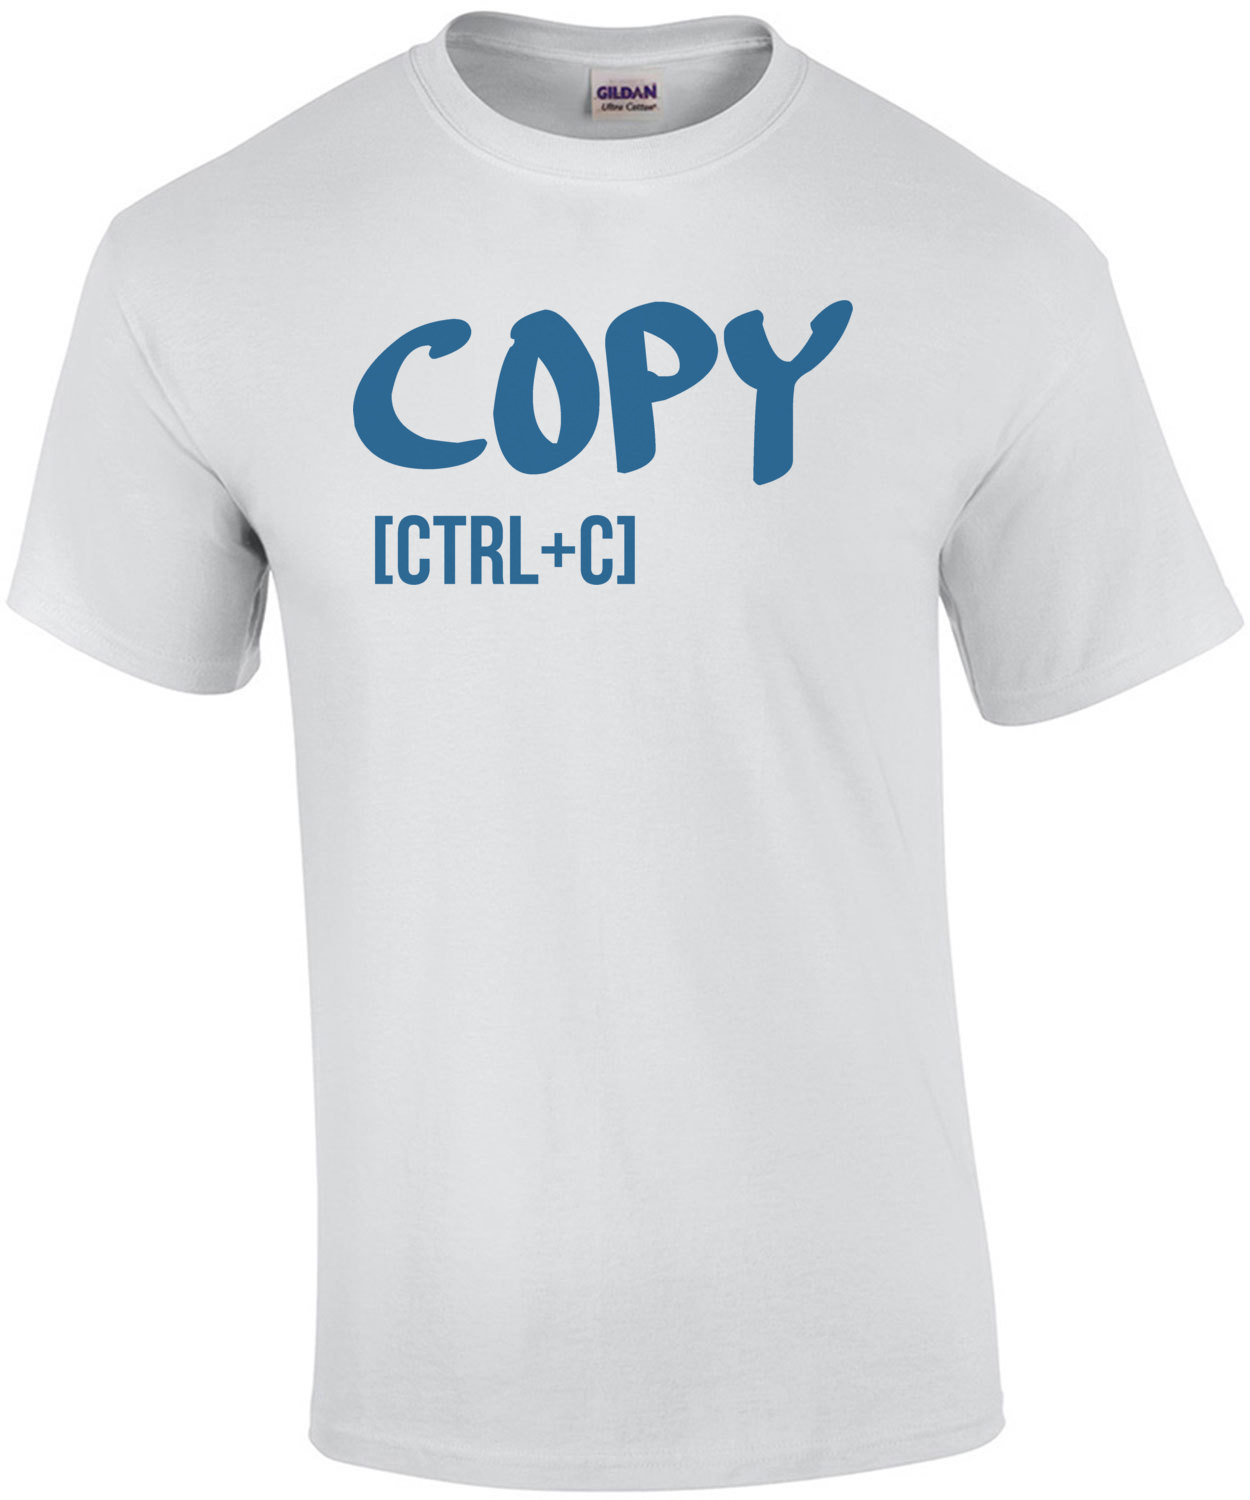 Copy and Paste - COPY - Cute Funny Parent and Daughter/Son T-Shirt